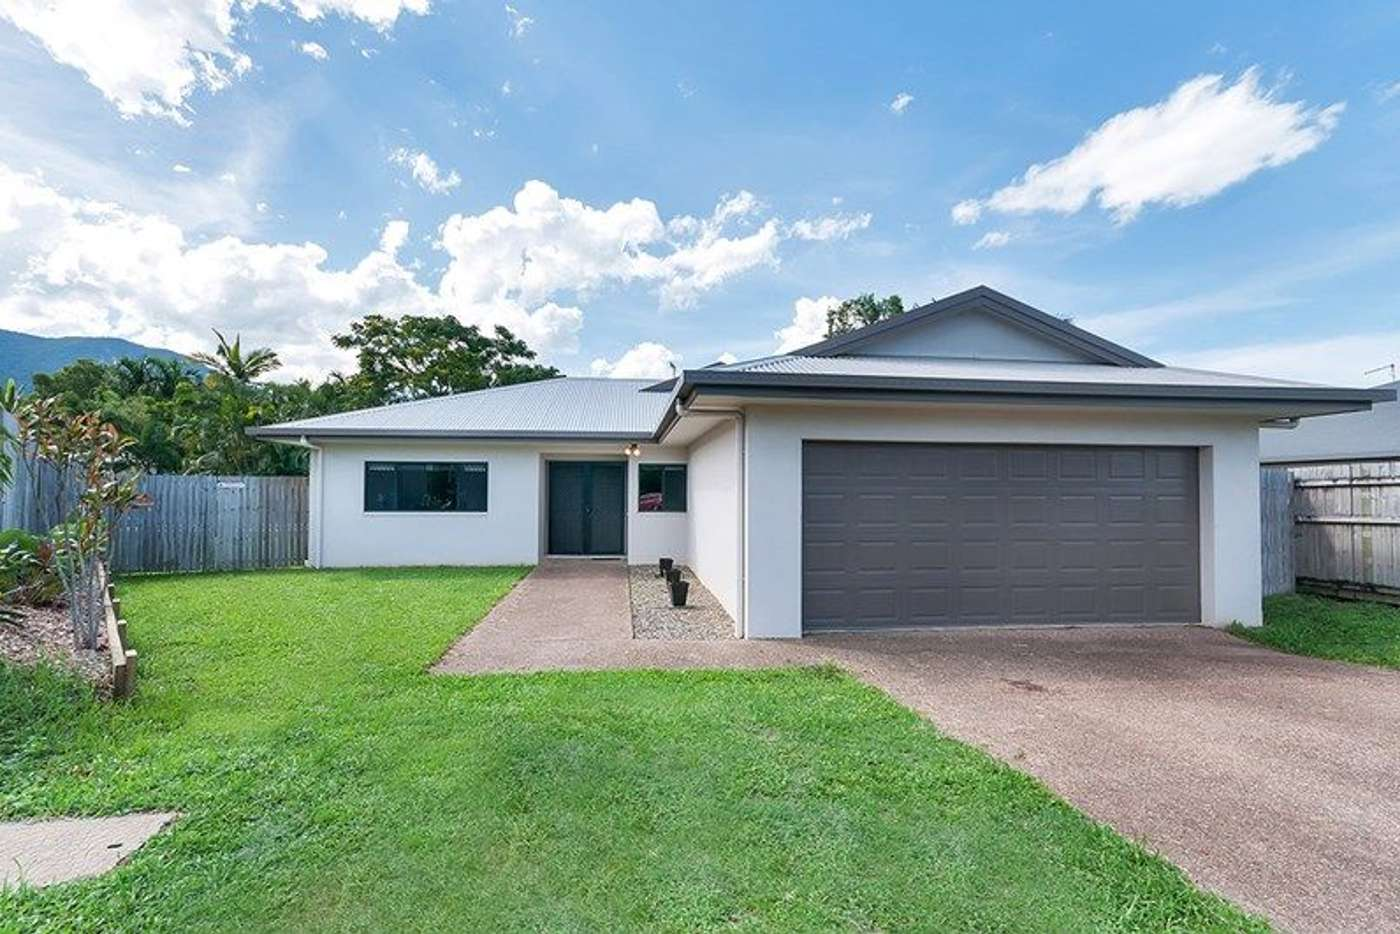 Main view of Homely house listing, 16 Milko Close, Brinsmead QLD 4870